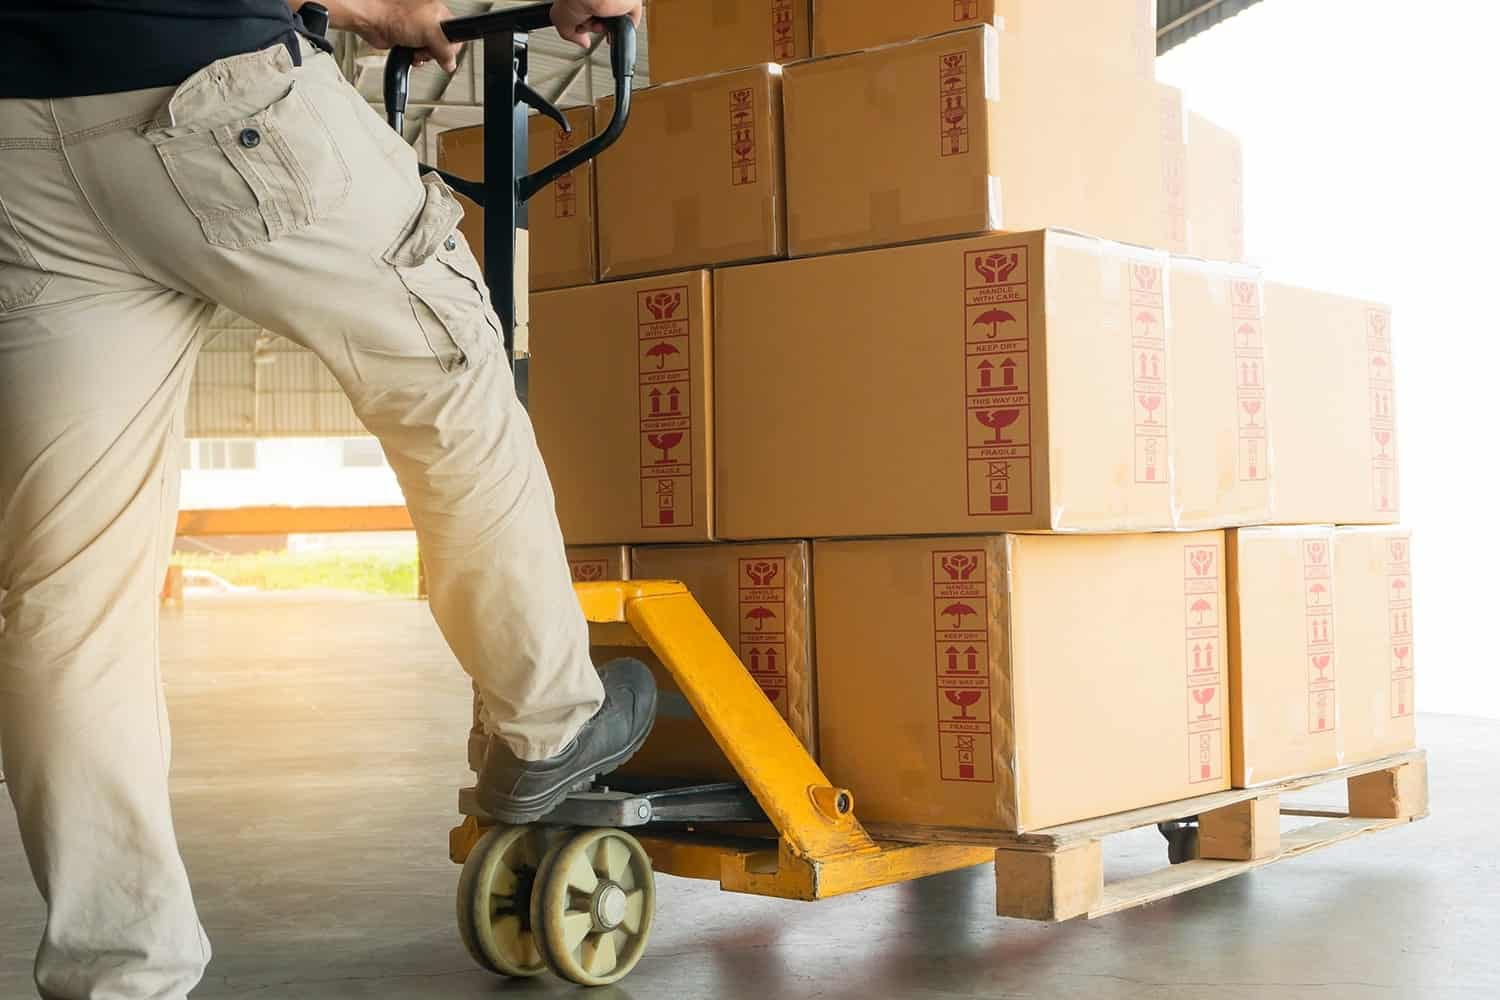 Inspection and General Maintenance for Pallet Jack